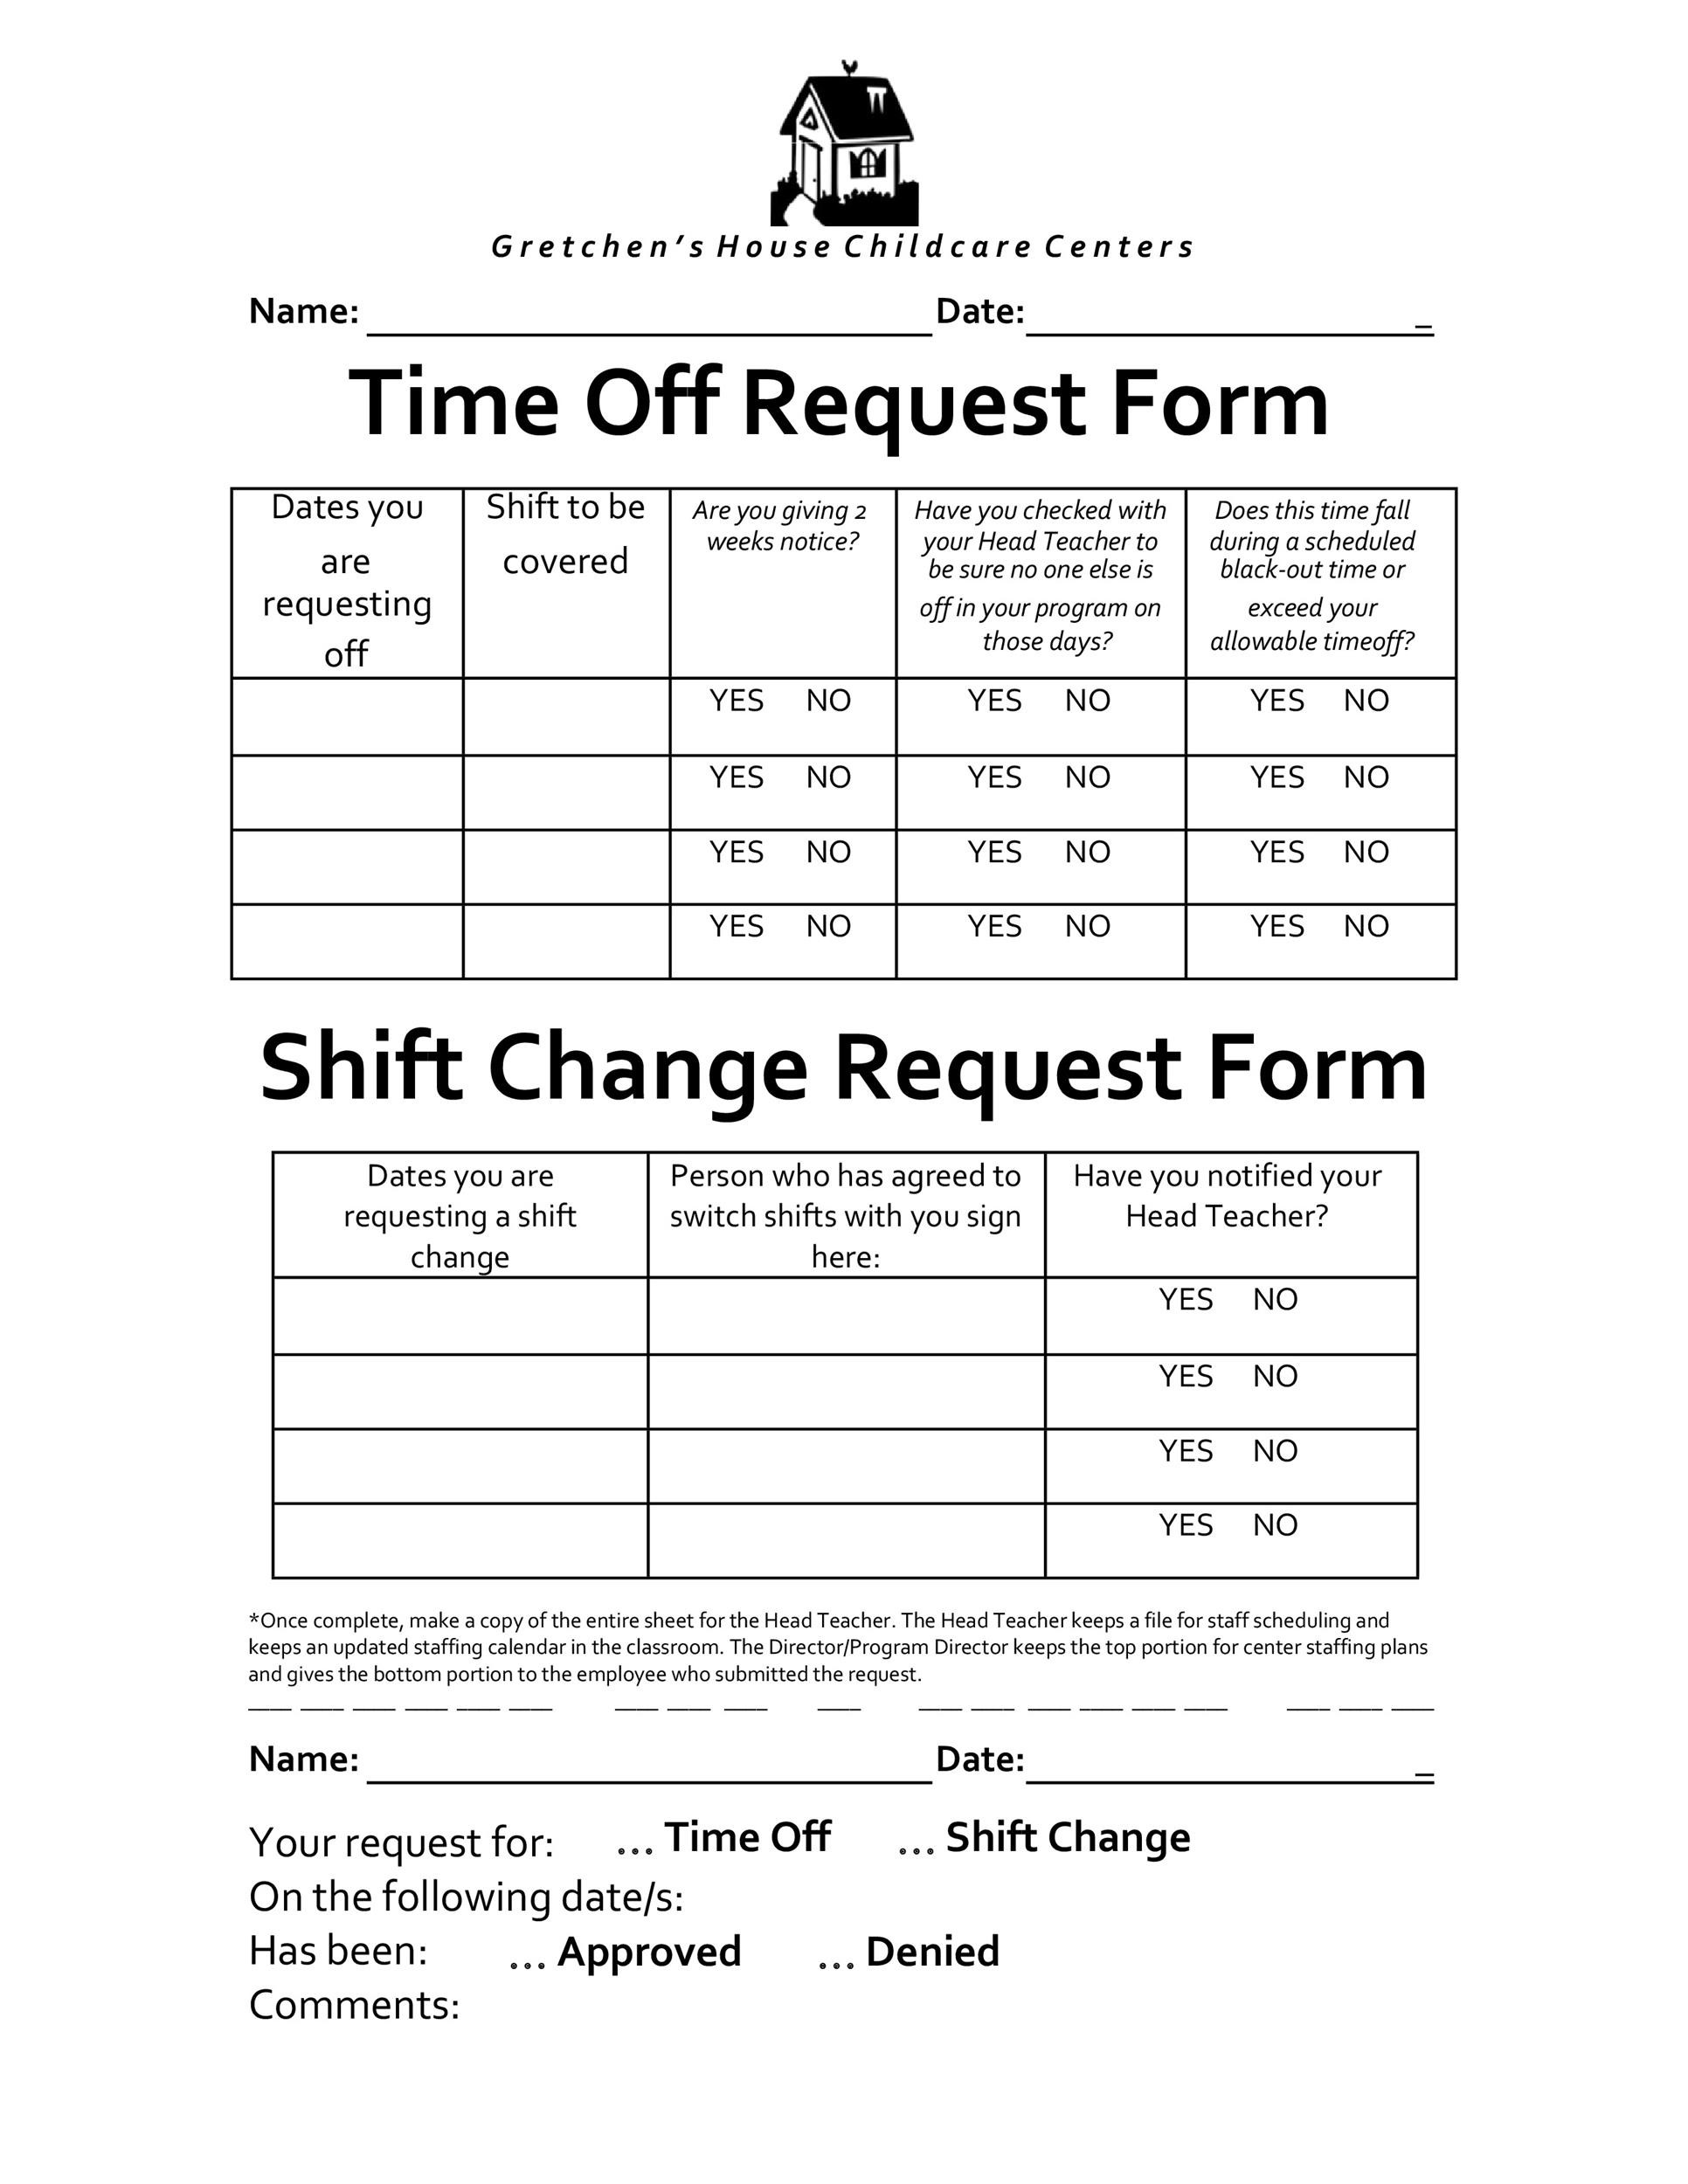 time off forms - Romeolandinez - request for time off form